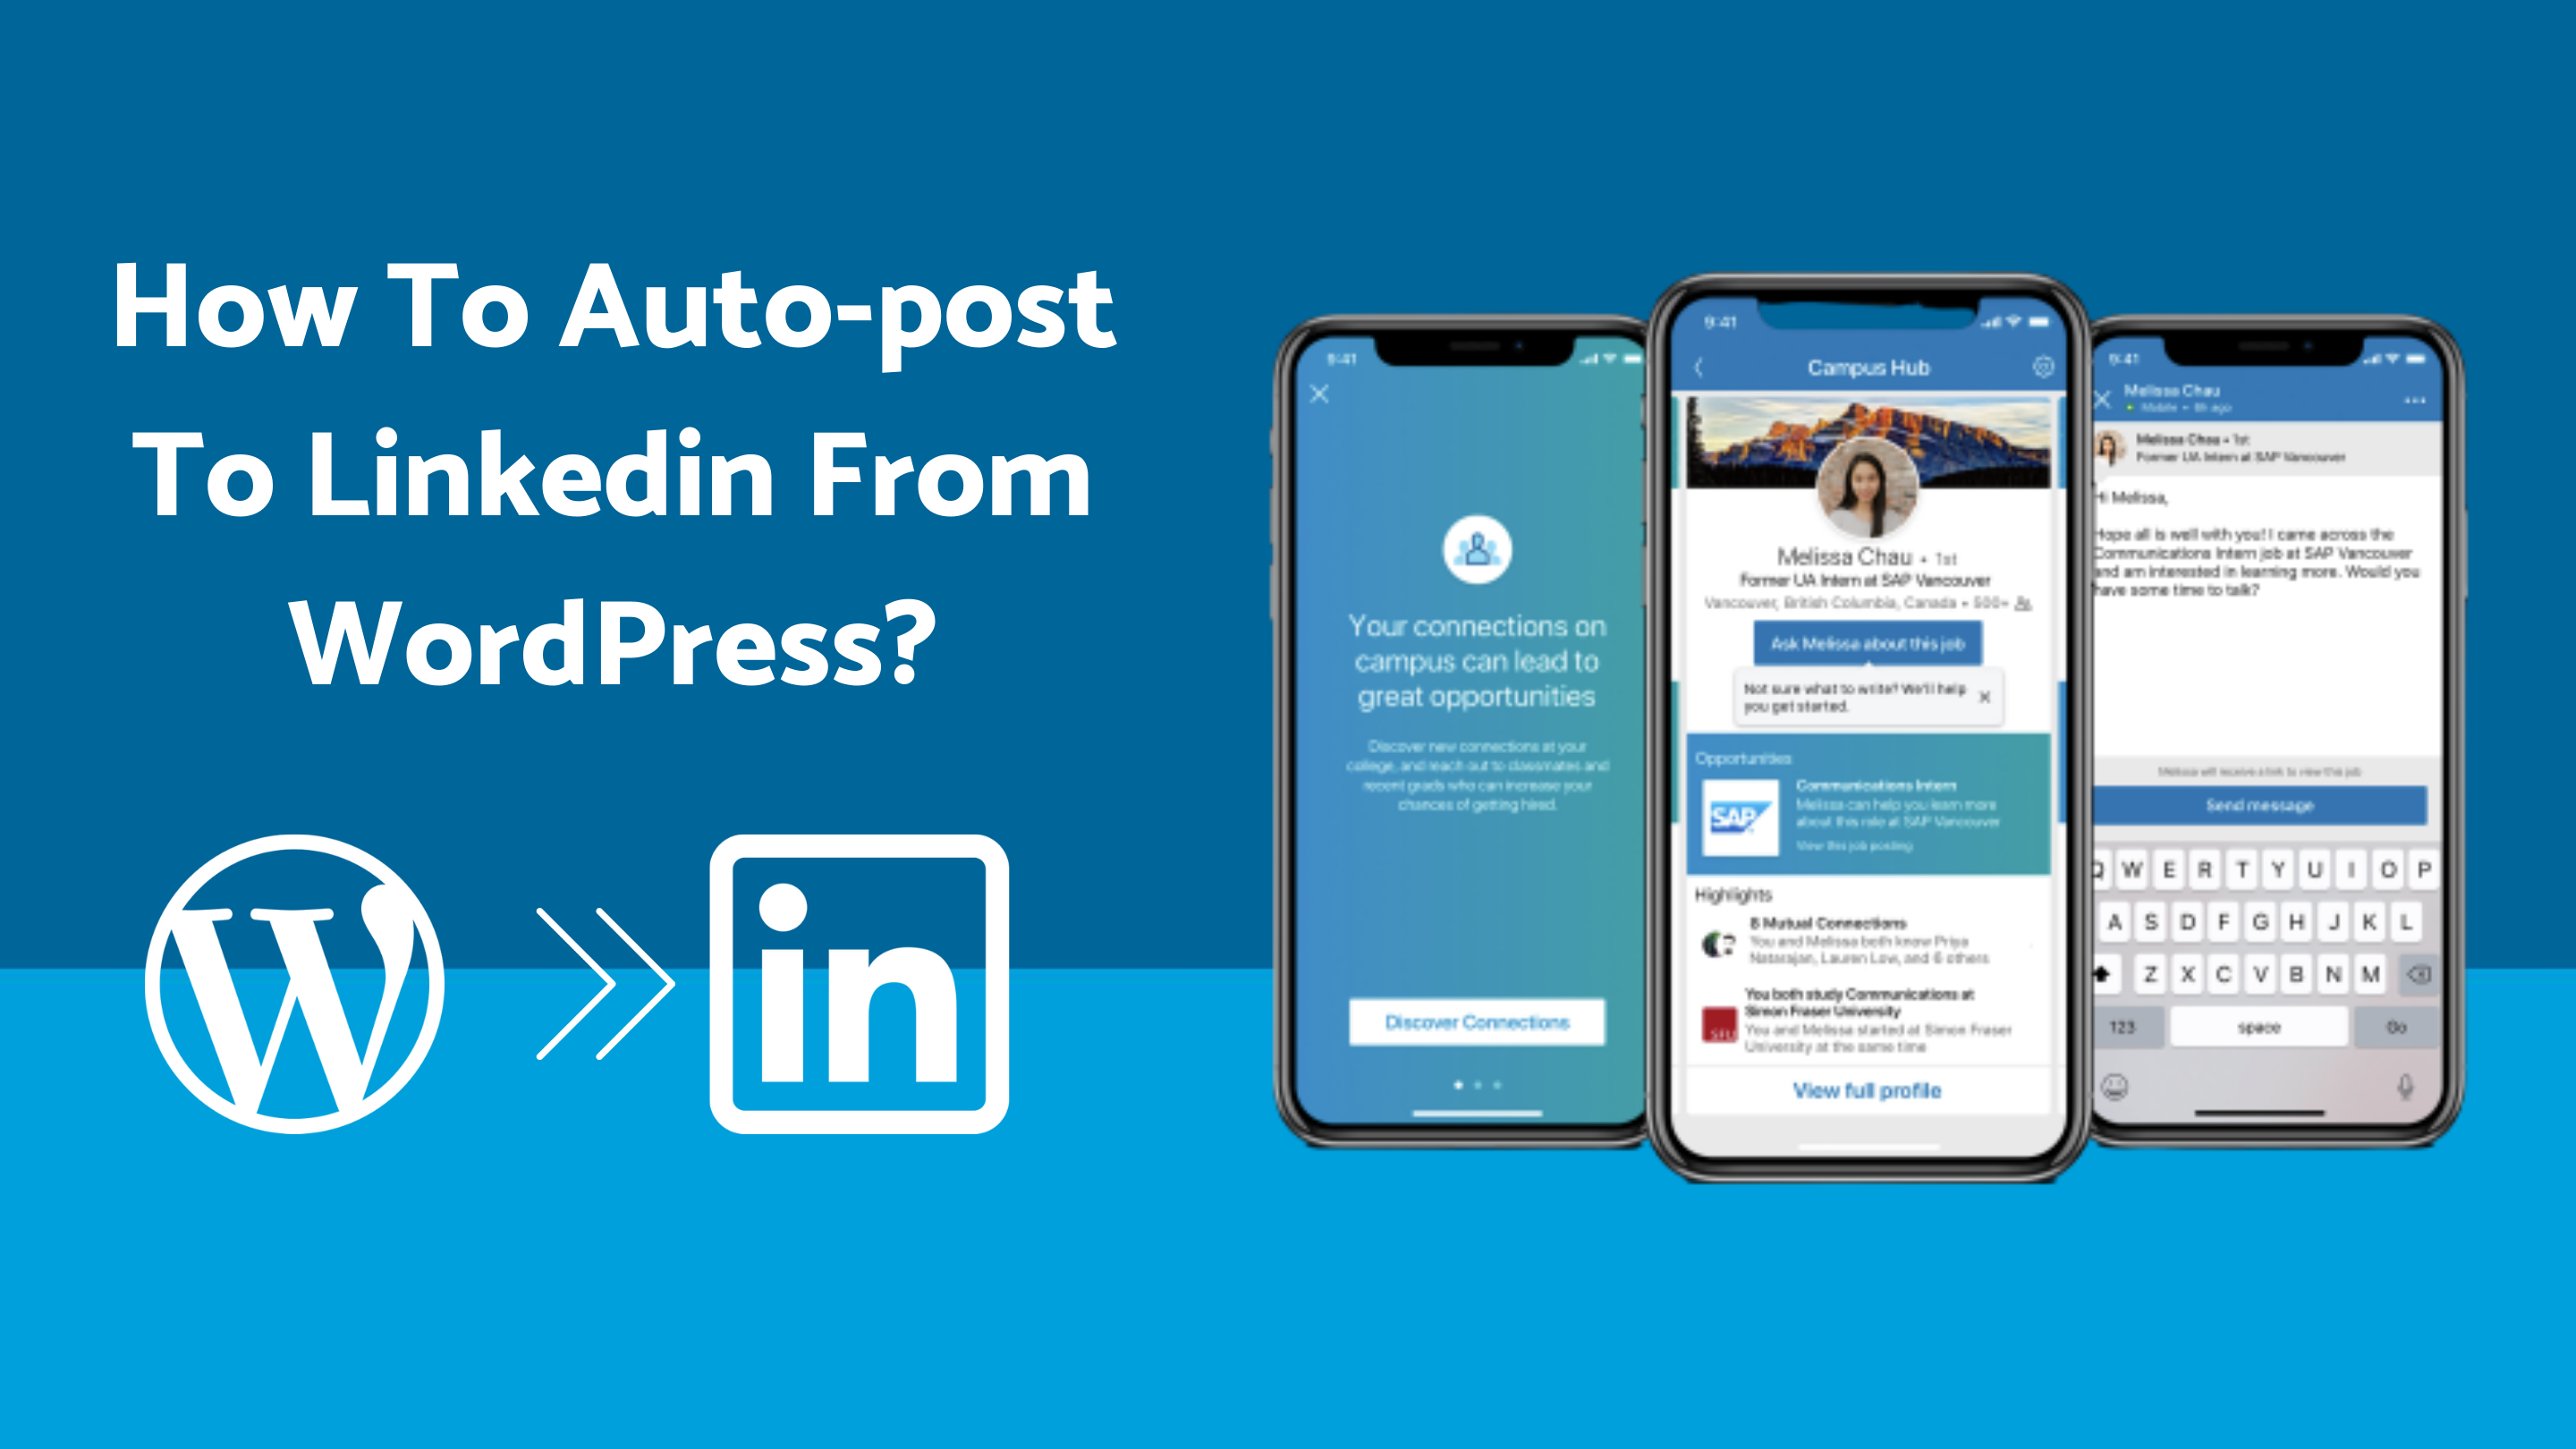 How To Auto-Post To LinkedIn From WordPress [A Complete Guide]